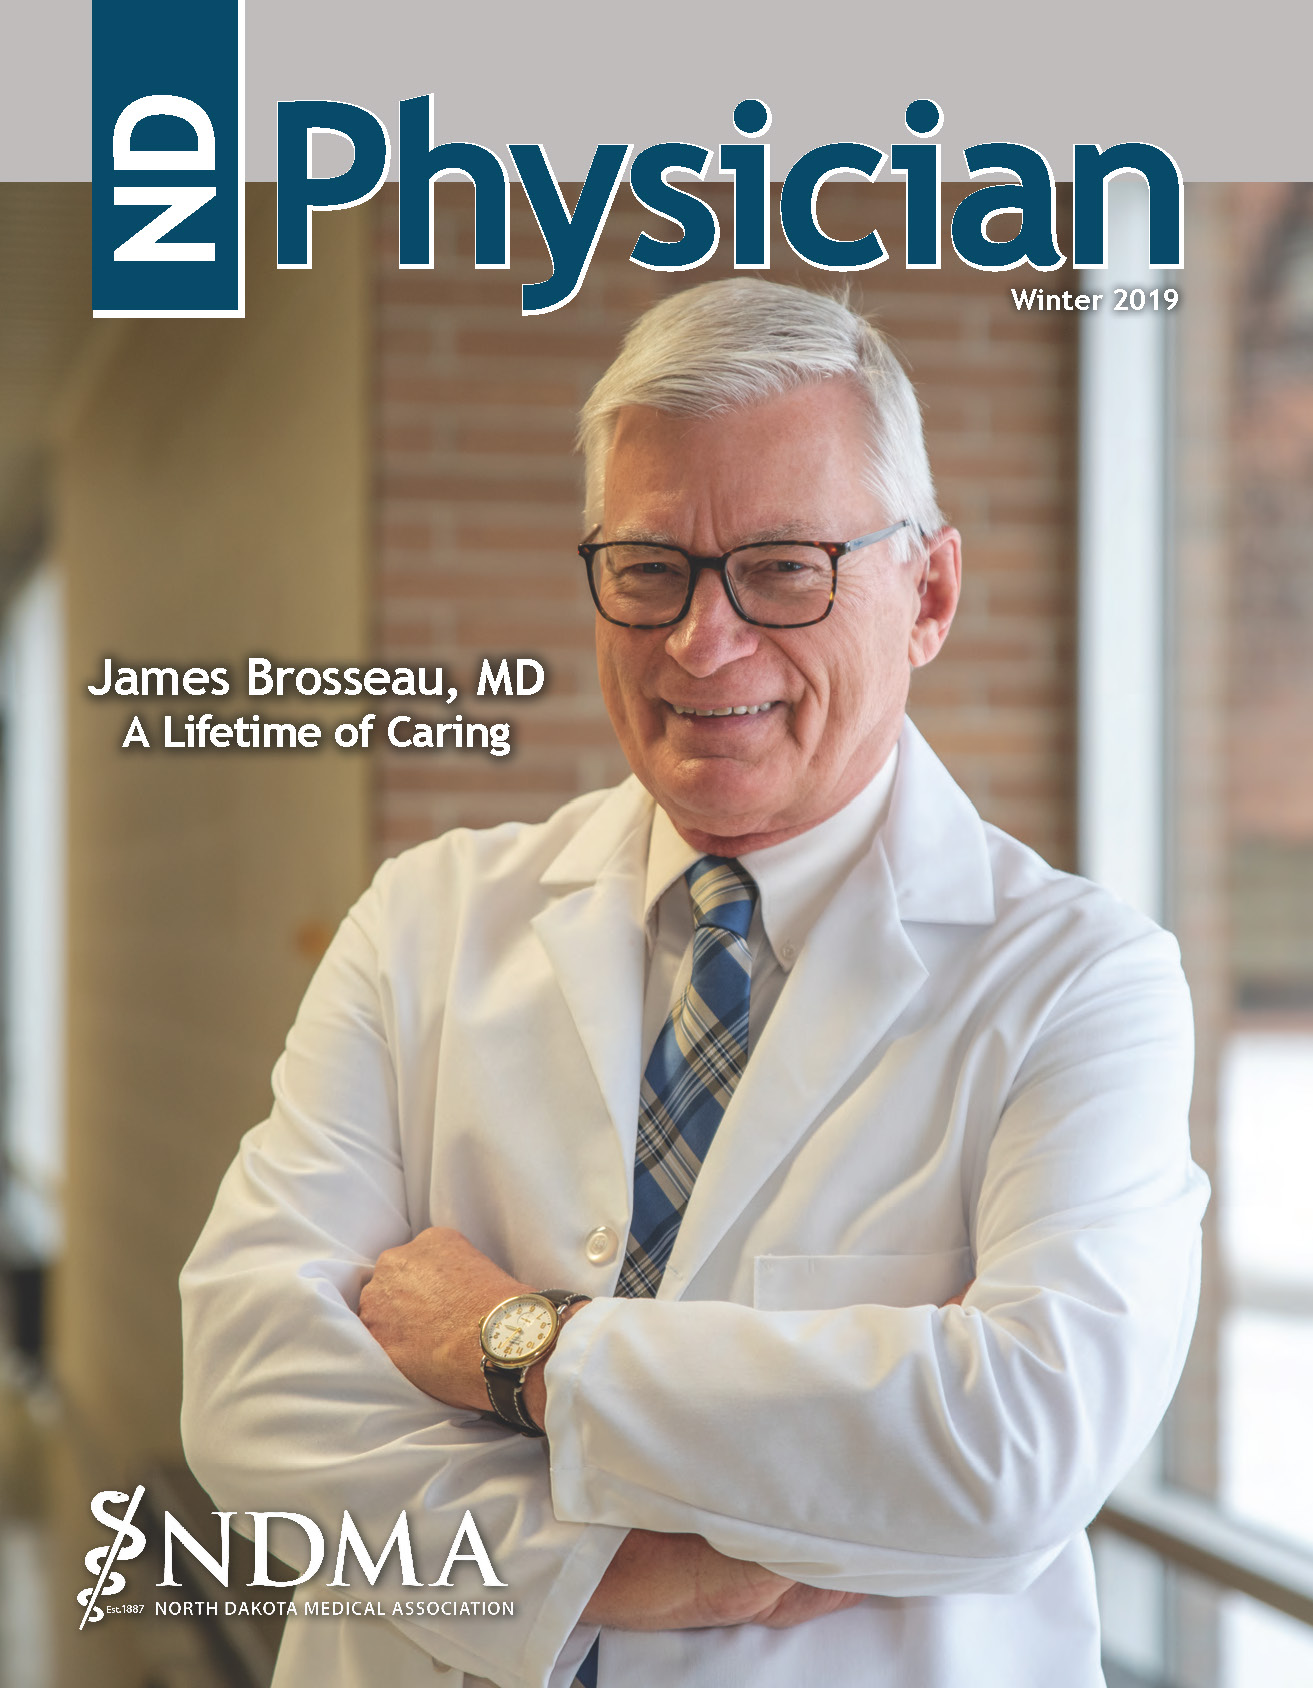 ND Physician Winter 2019 magazine cover